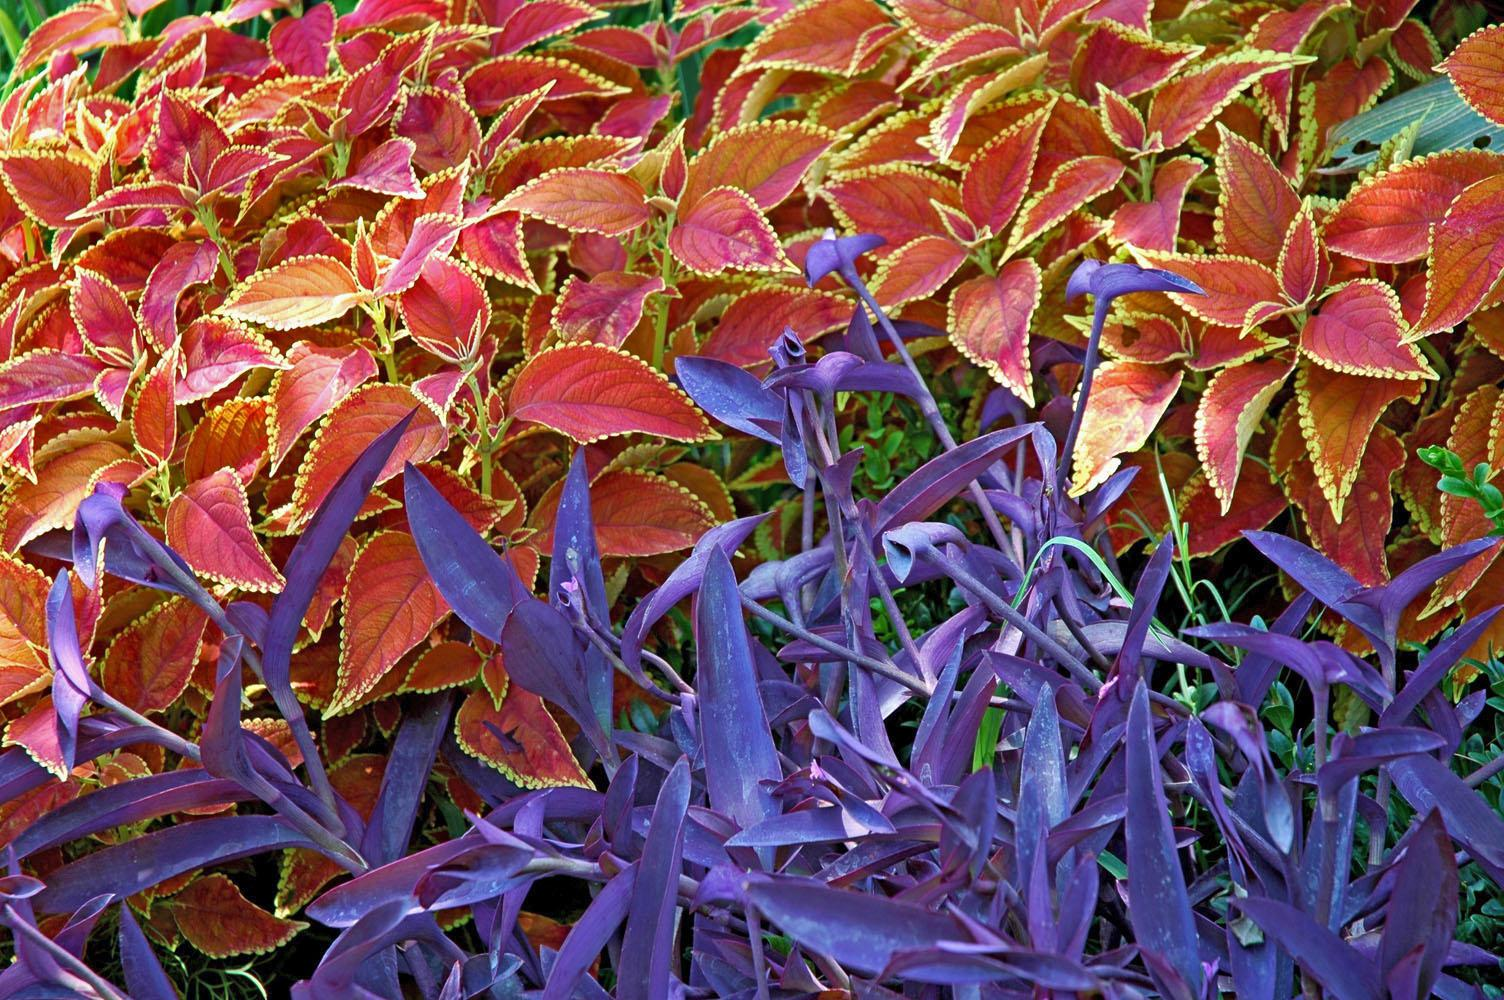 The Rustic Orange coleus produces a striking contrast when planted with the perennial Purple Heart, a vining plant sometimes called Setcresea.